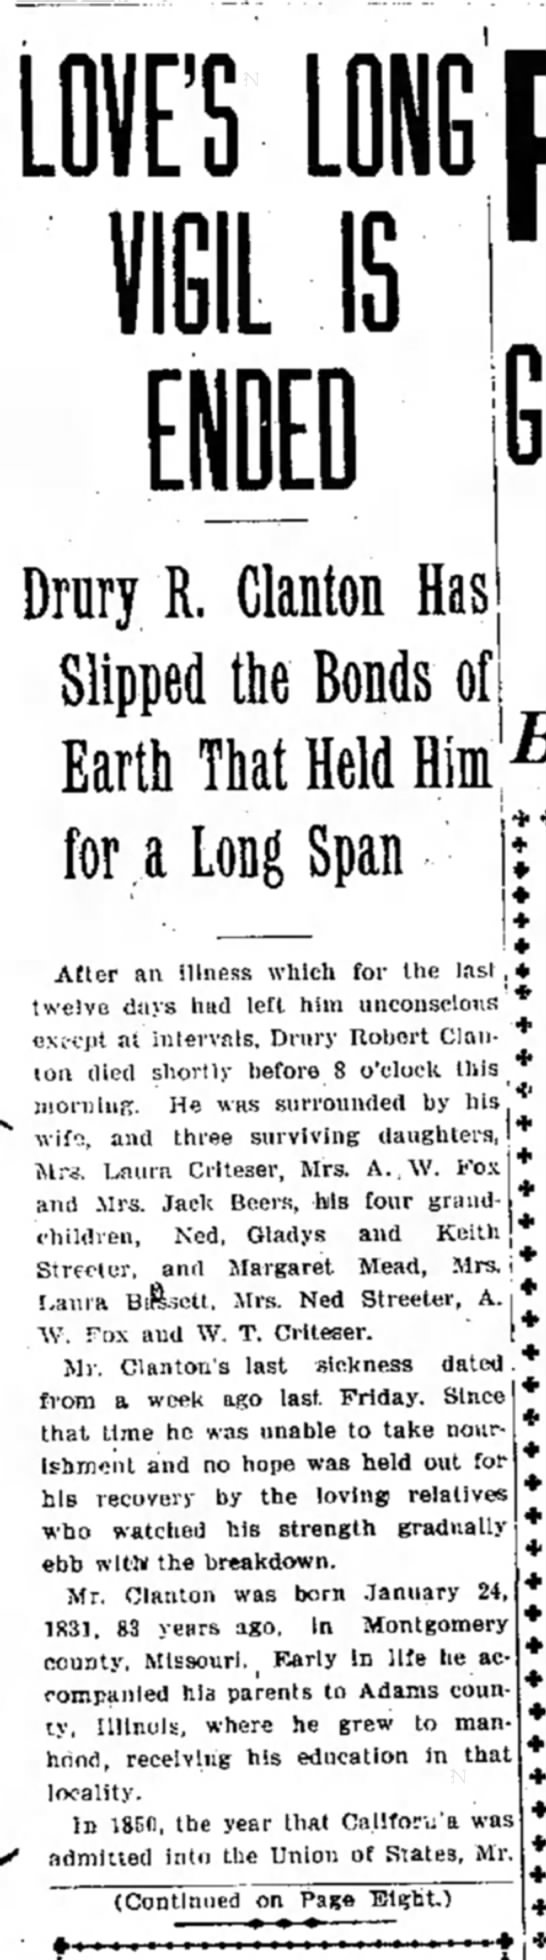 Drewry Clanton Obit 12 Aug 1914 Page 1, Col 1 and Pg 8, Col 3